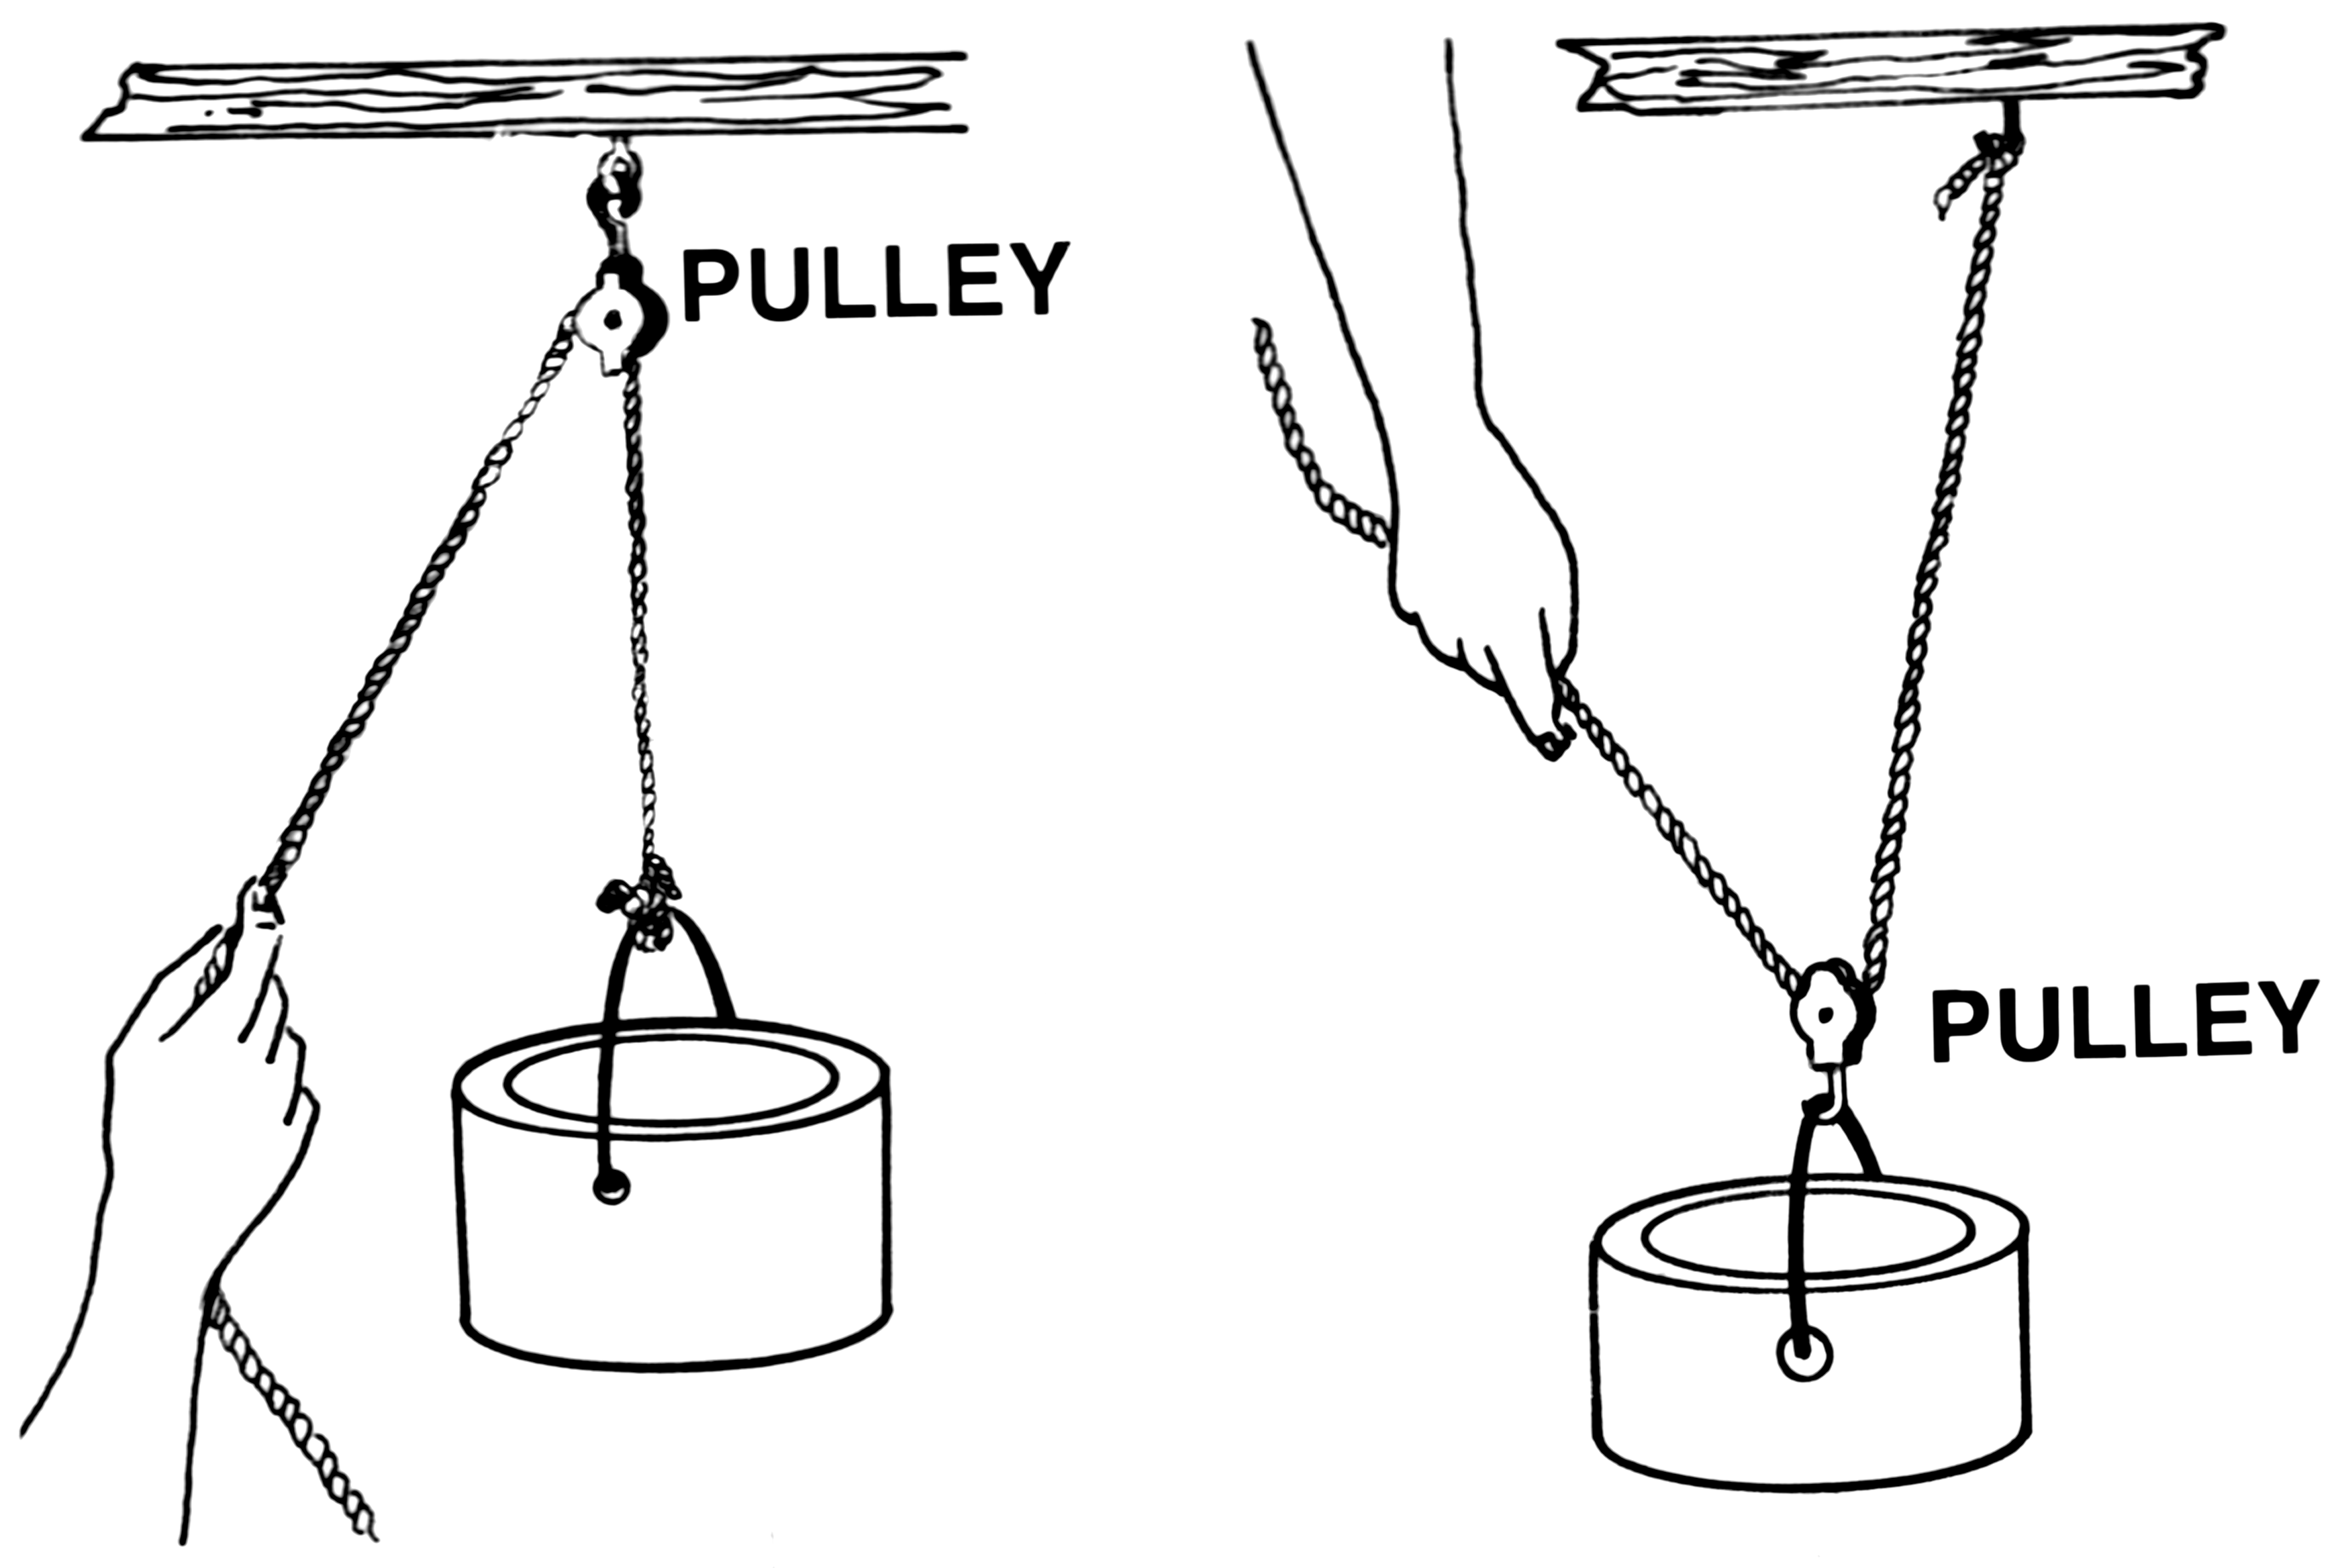 Pulley Simple Machines